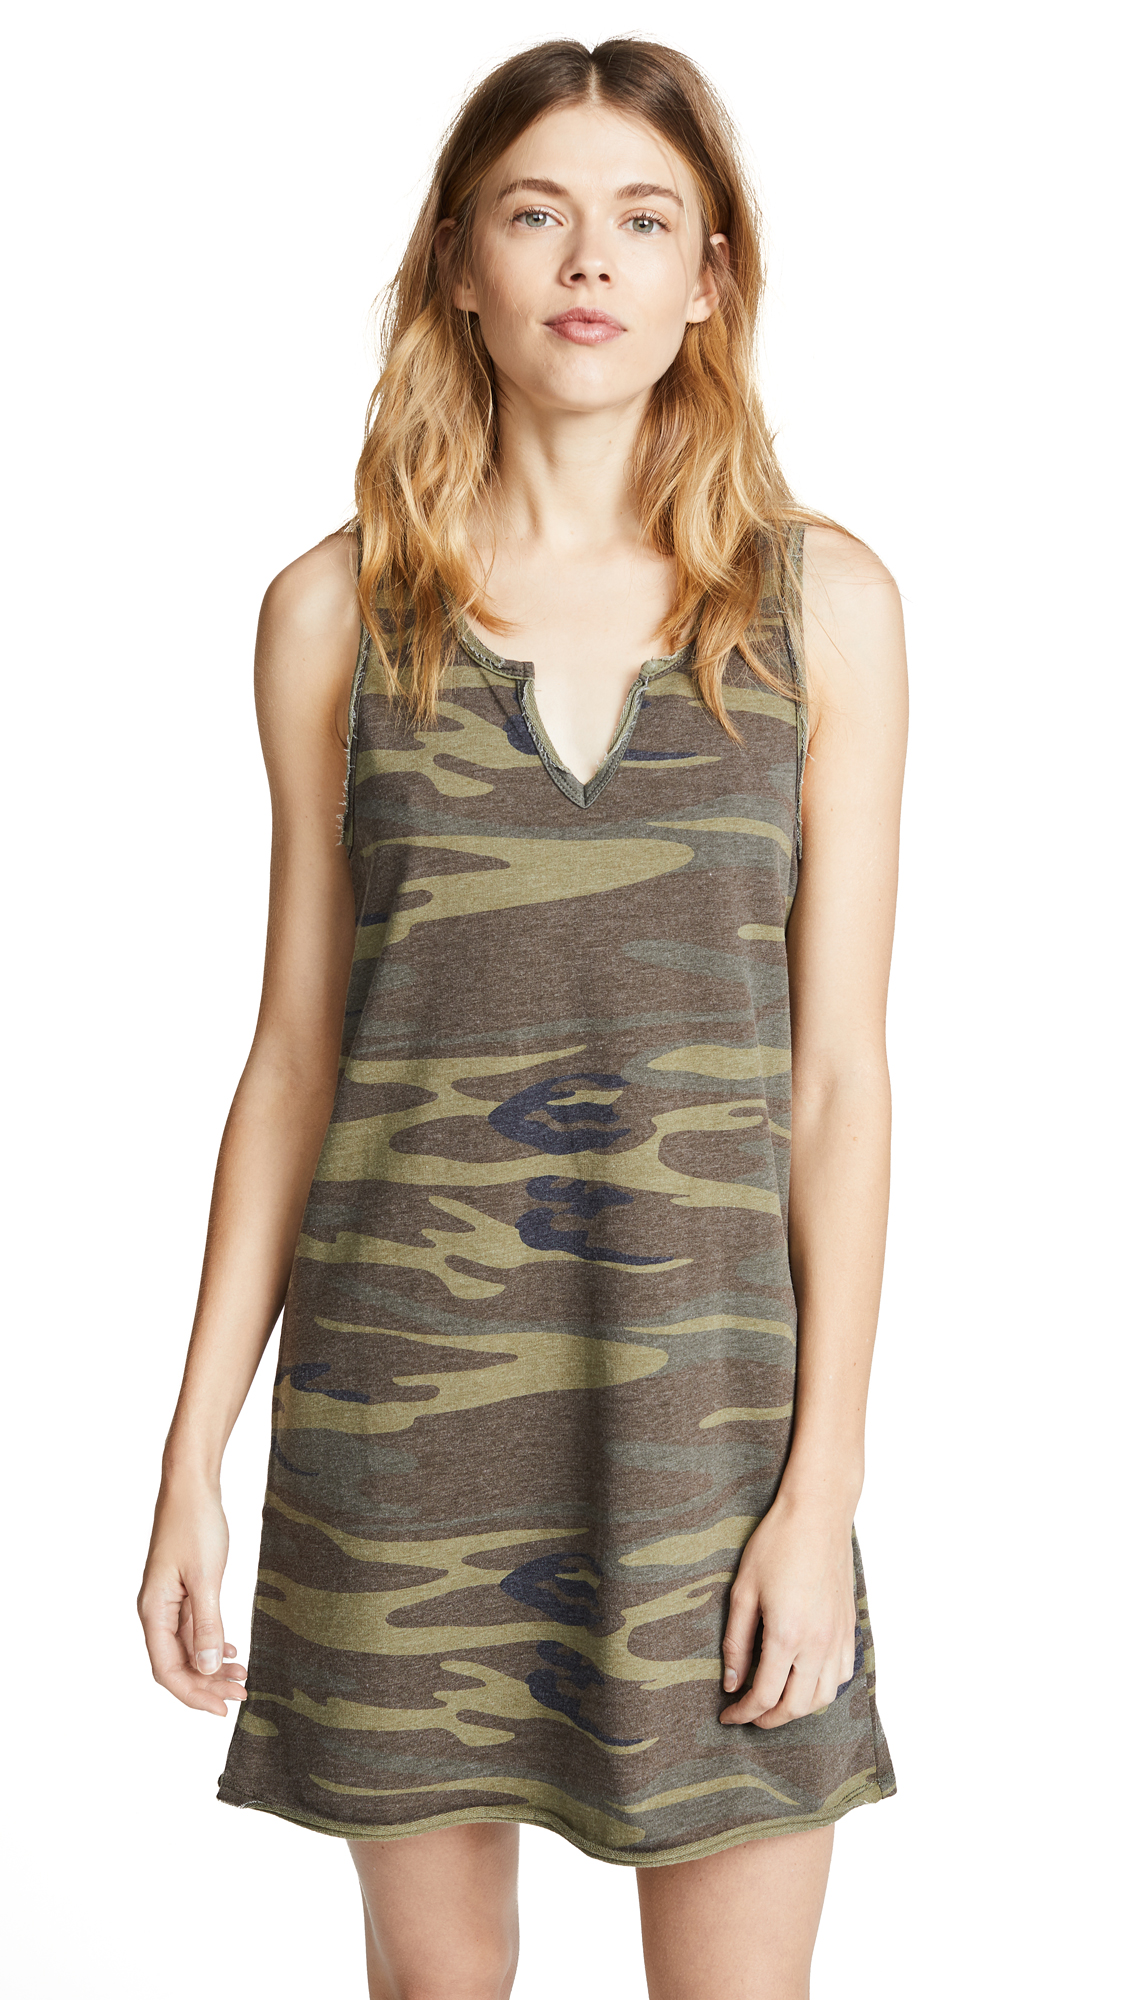 Z Supply Camo Tank Dress In Camo Green